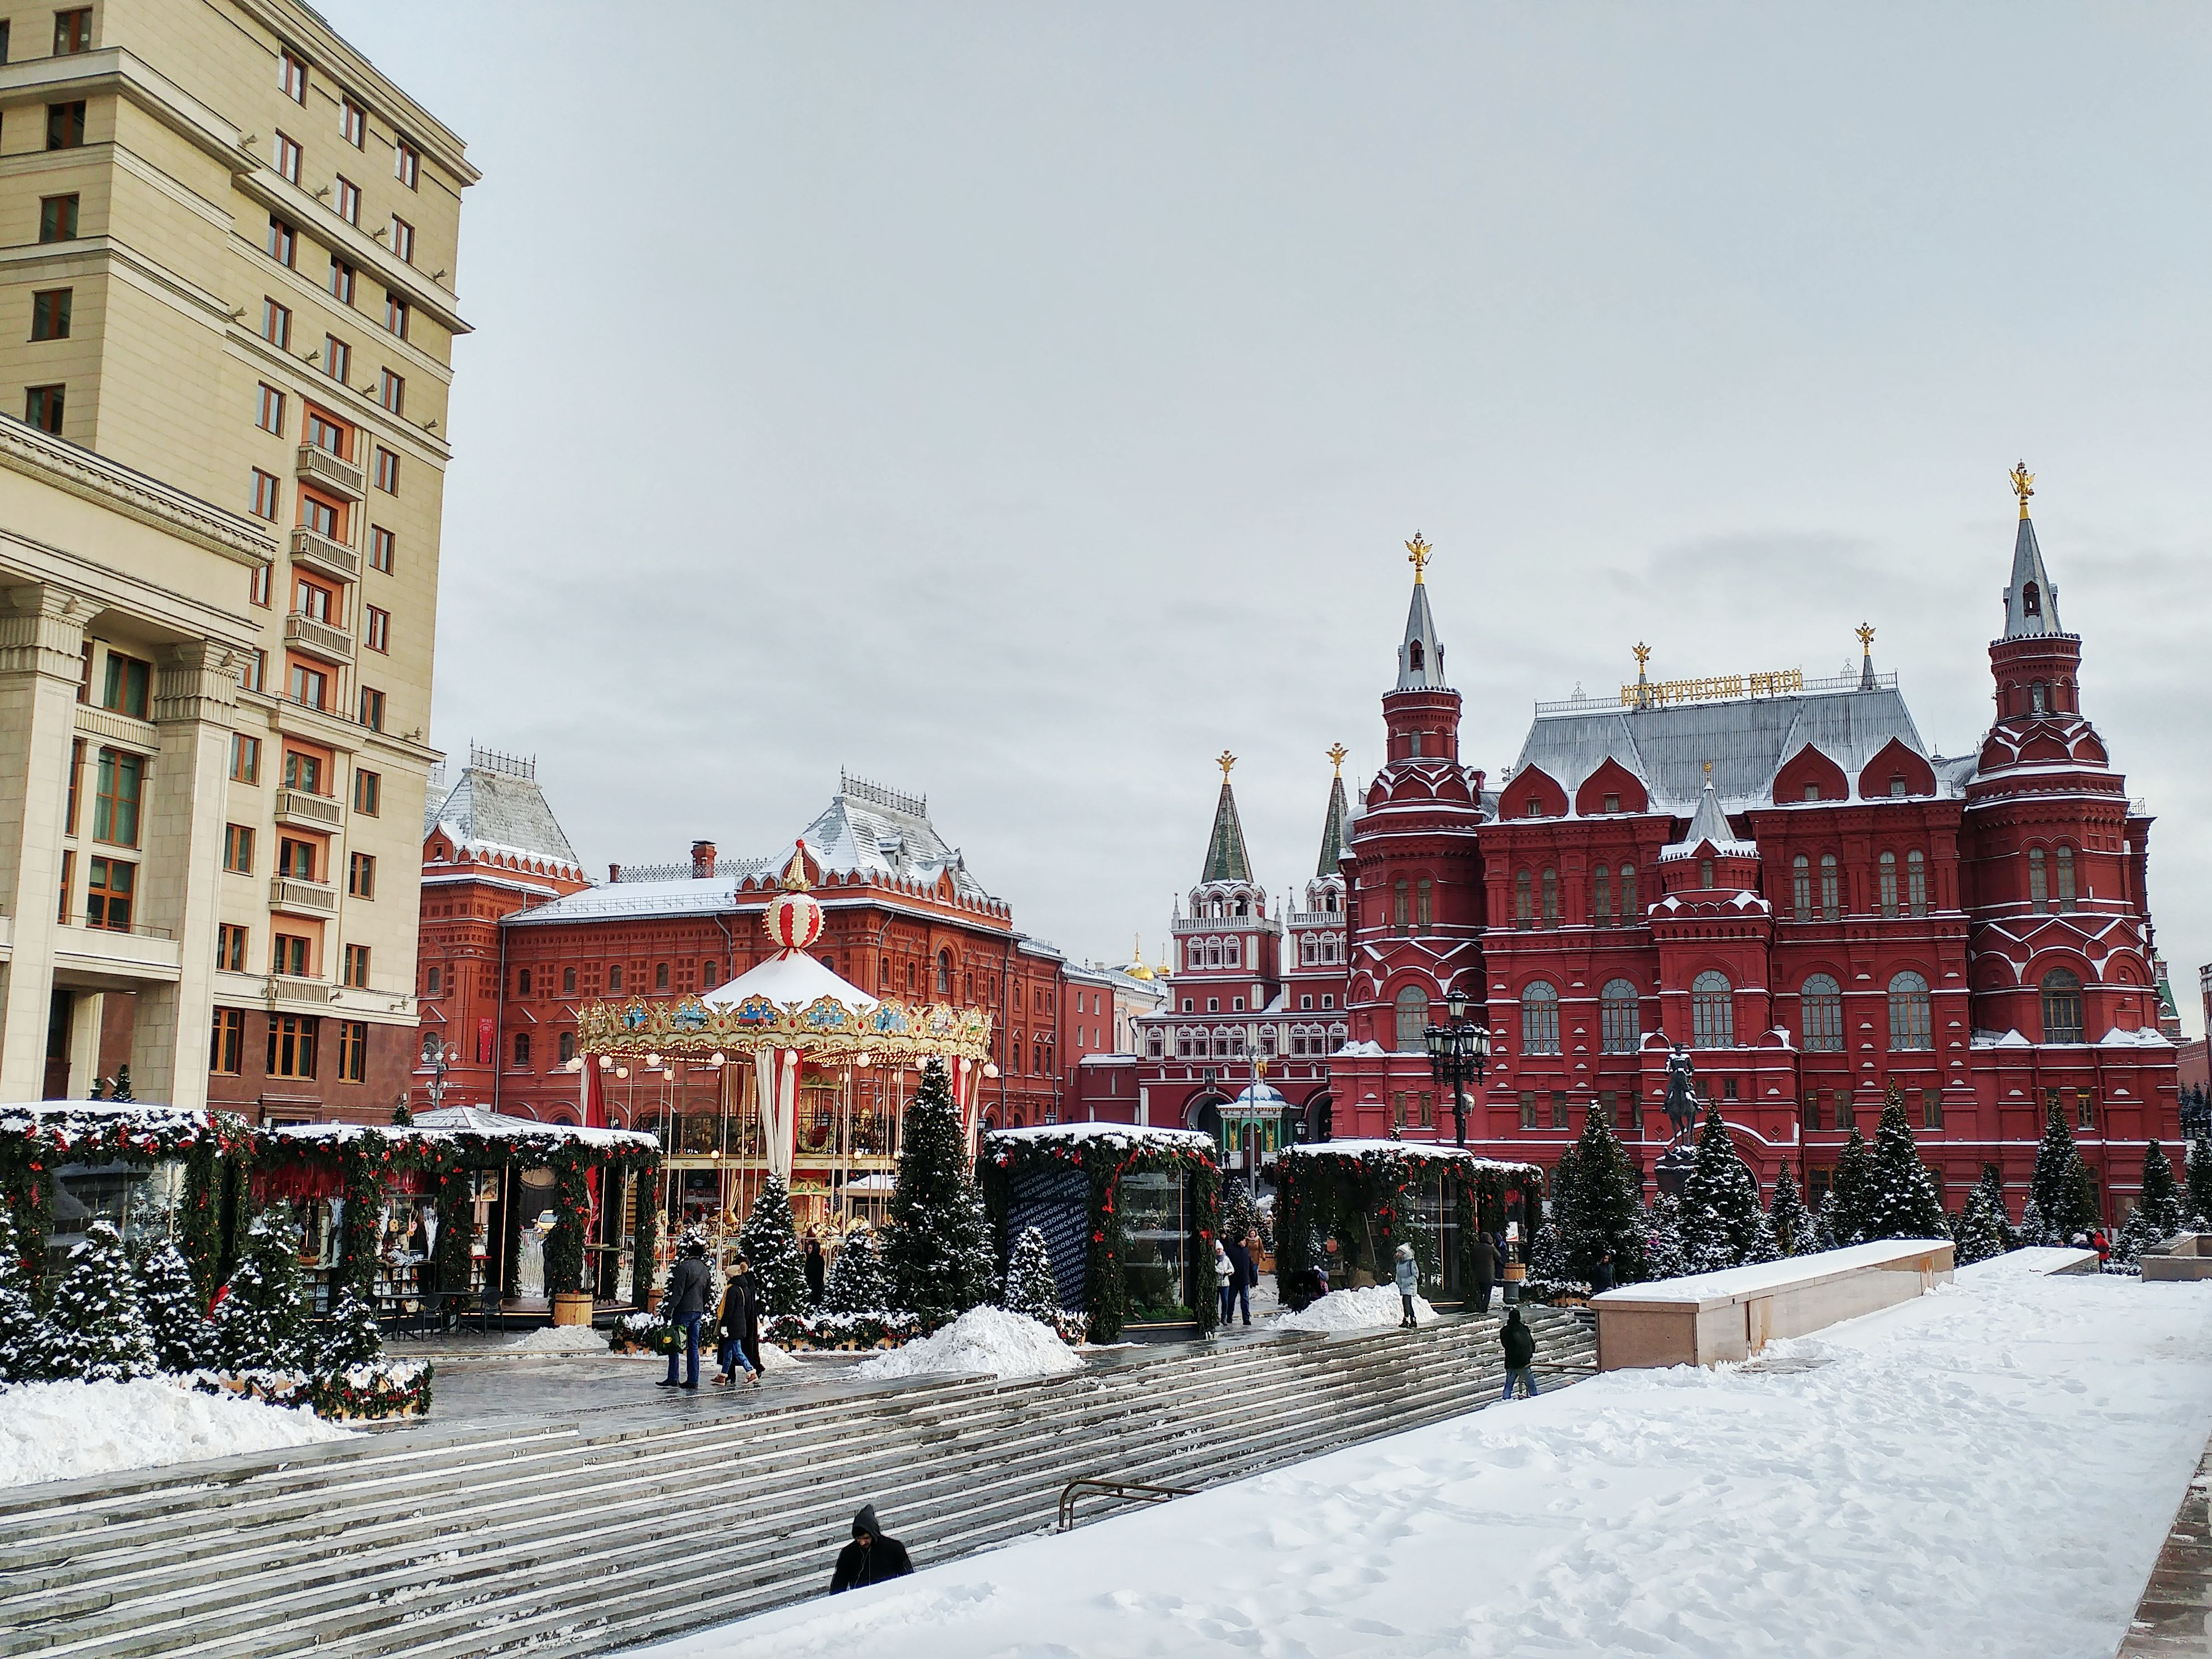 Four Seasons Moscow hotel overlooking festivities on Manezhnaya square